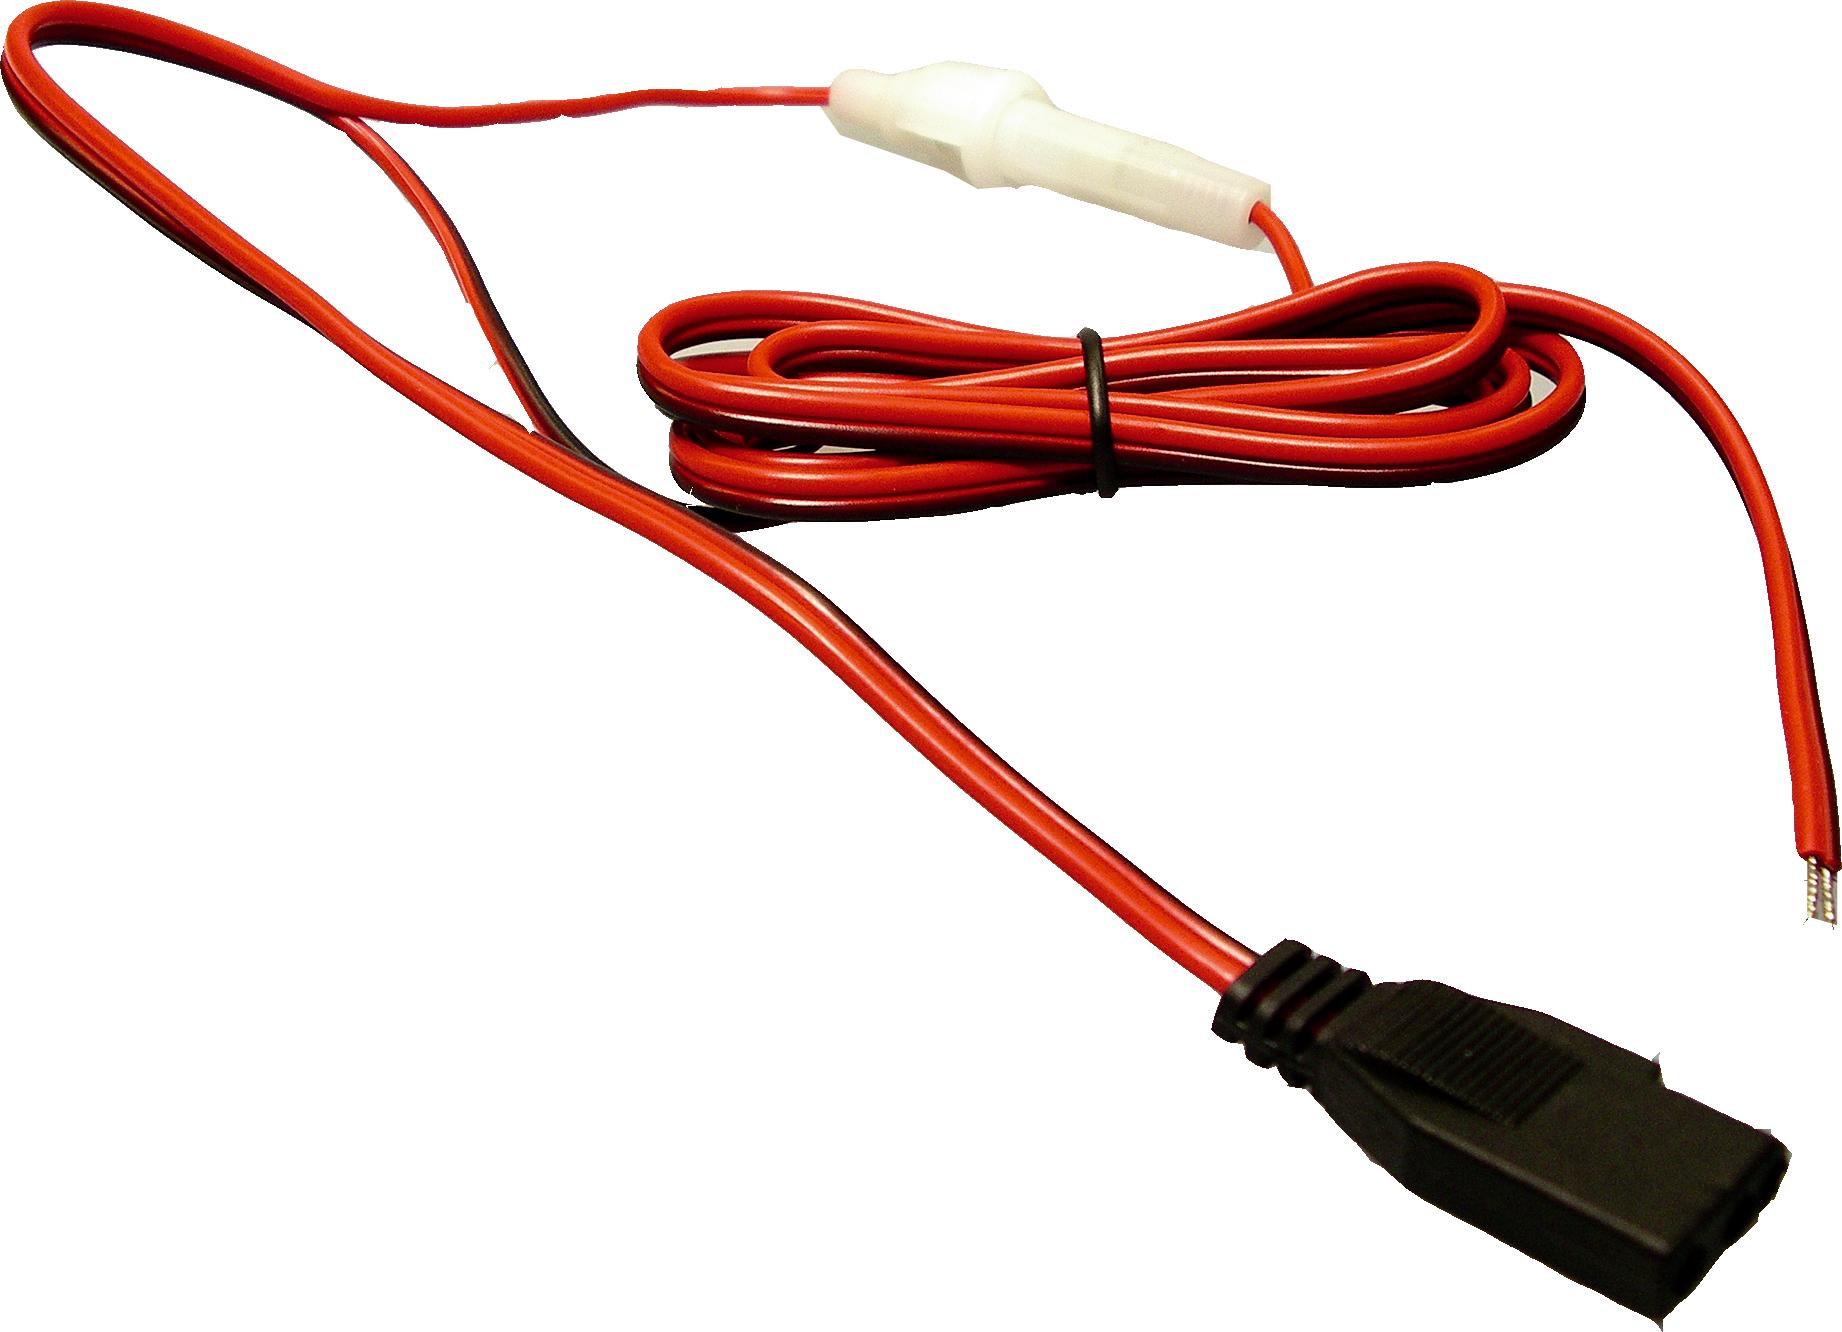 CB3 POWER LEAD DC /CORD 3 PIN